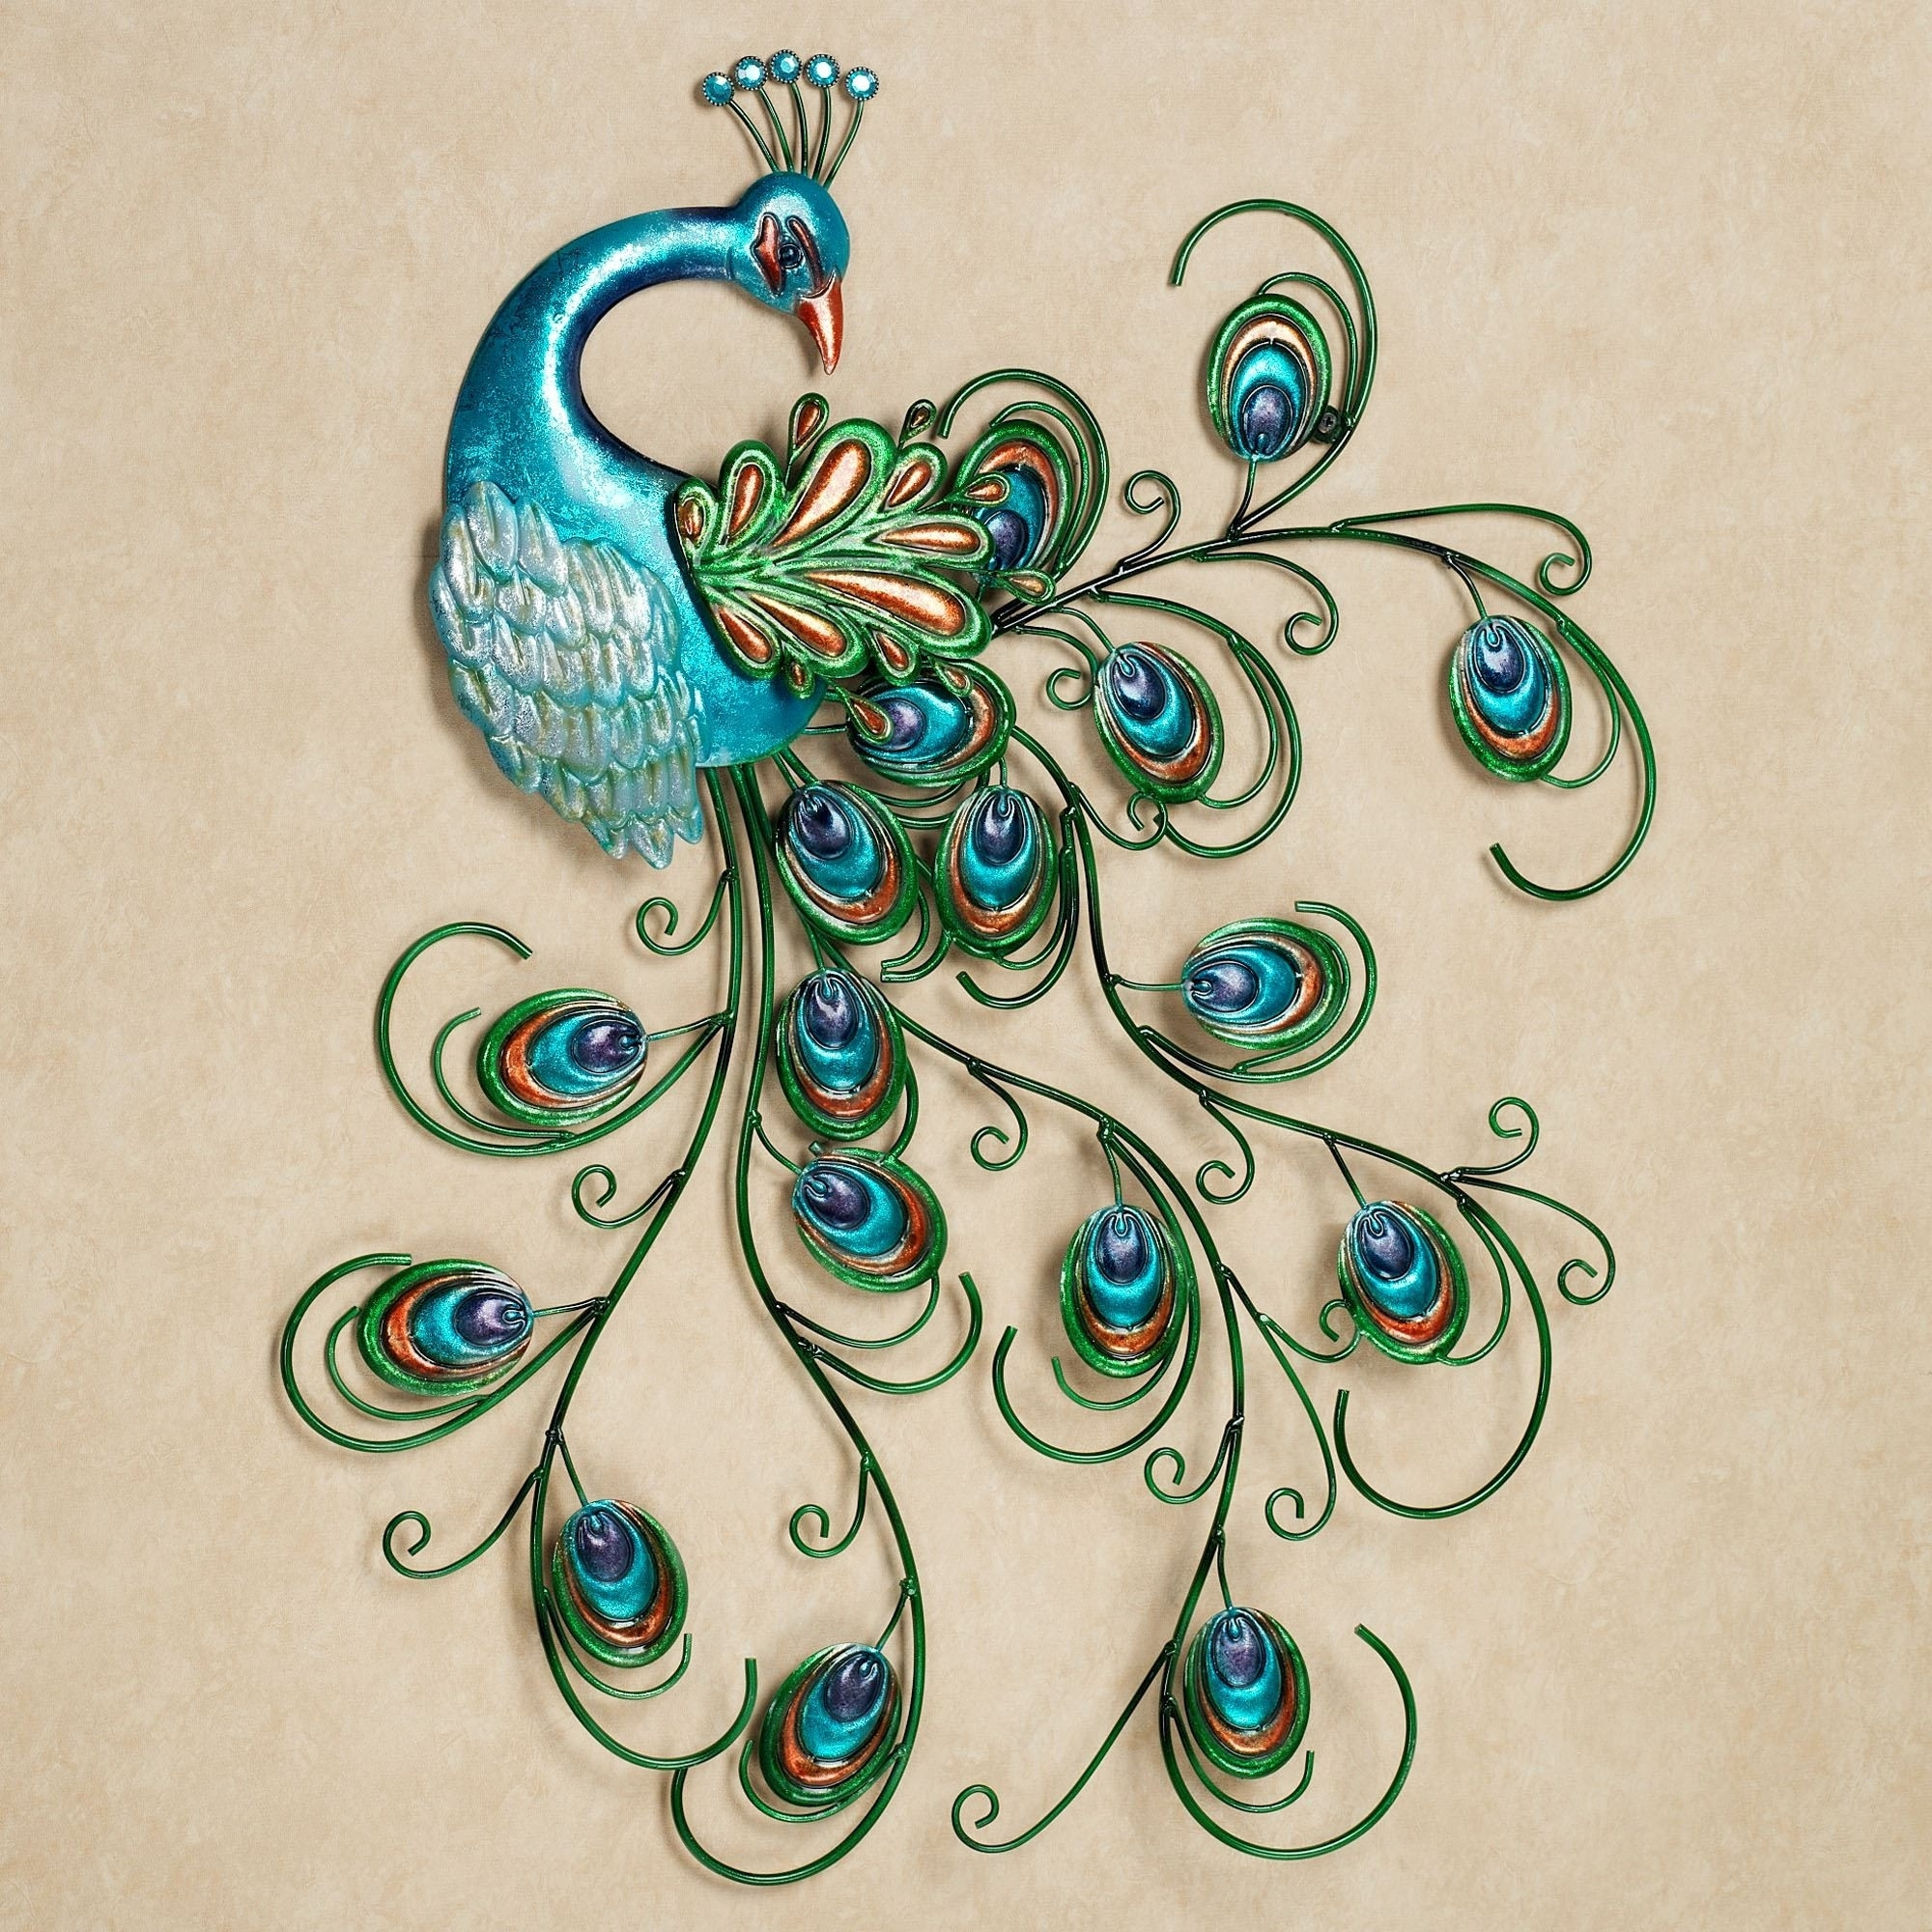 Lovely Peacock Wall Art Design Of Metal Peacock Wall Decor Of Metal With Regard To Peacock Wall Art (View 4 of 20)